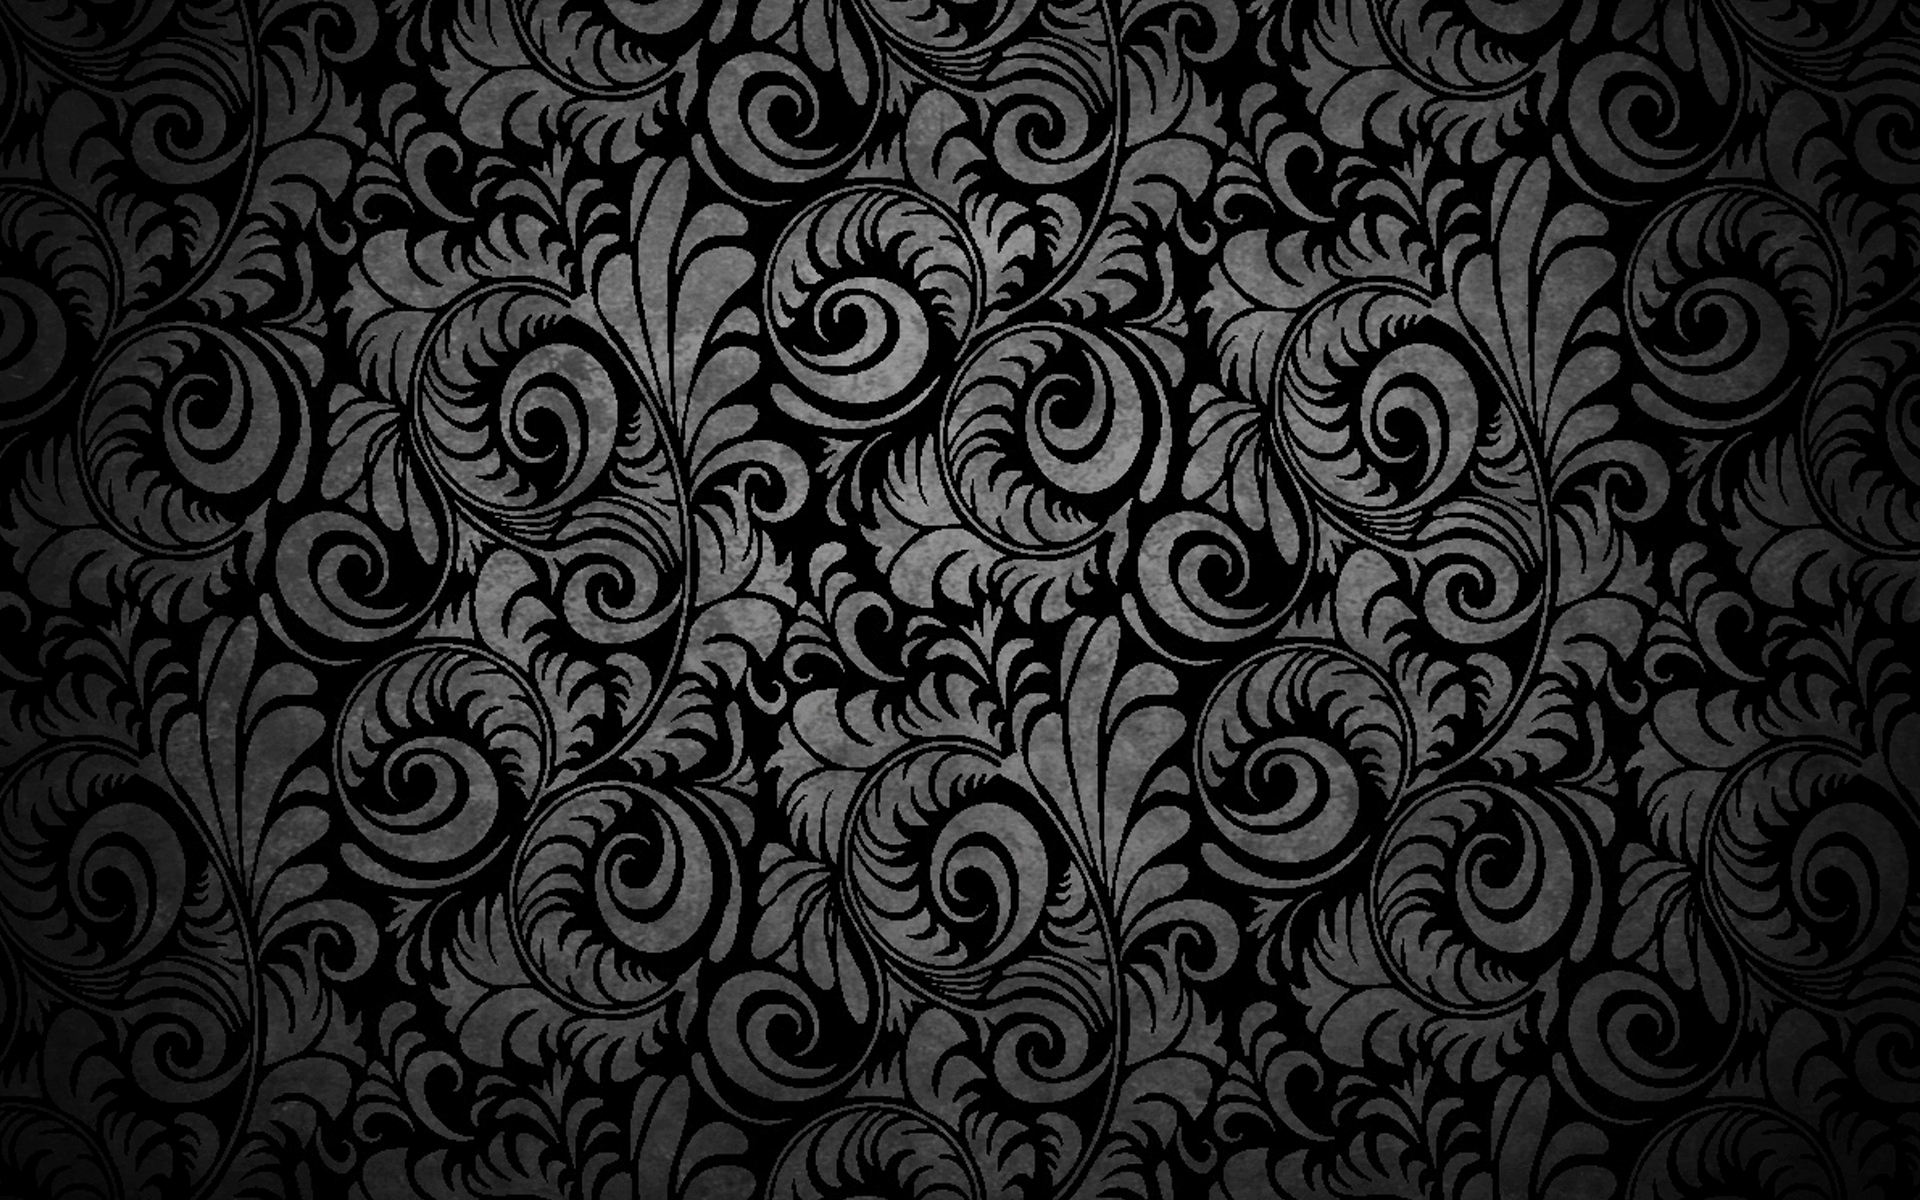 dark-pattern-full-hd-oww-1920%C3%97-wallpaper-wp3804386